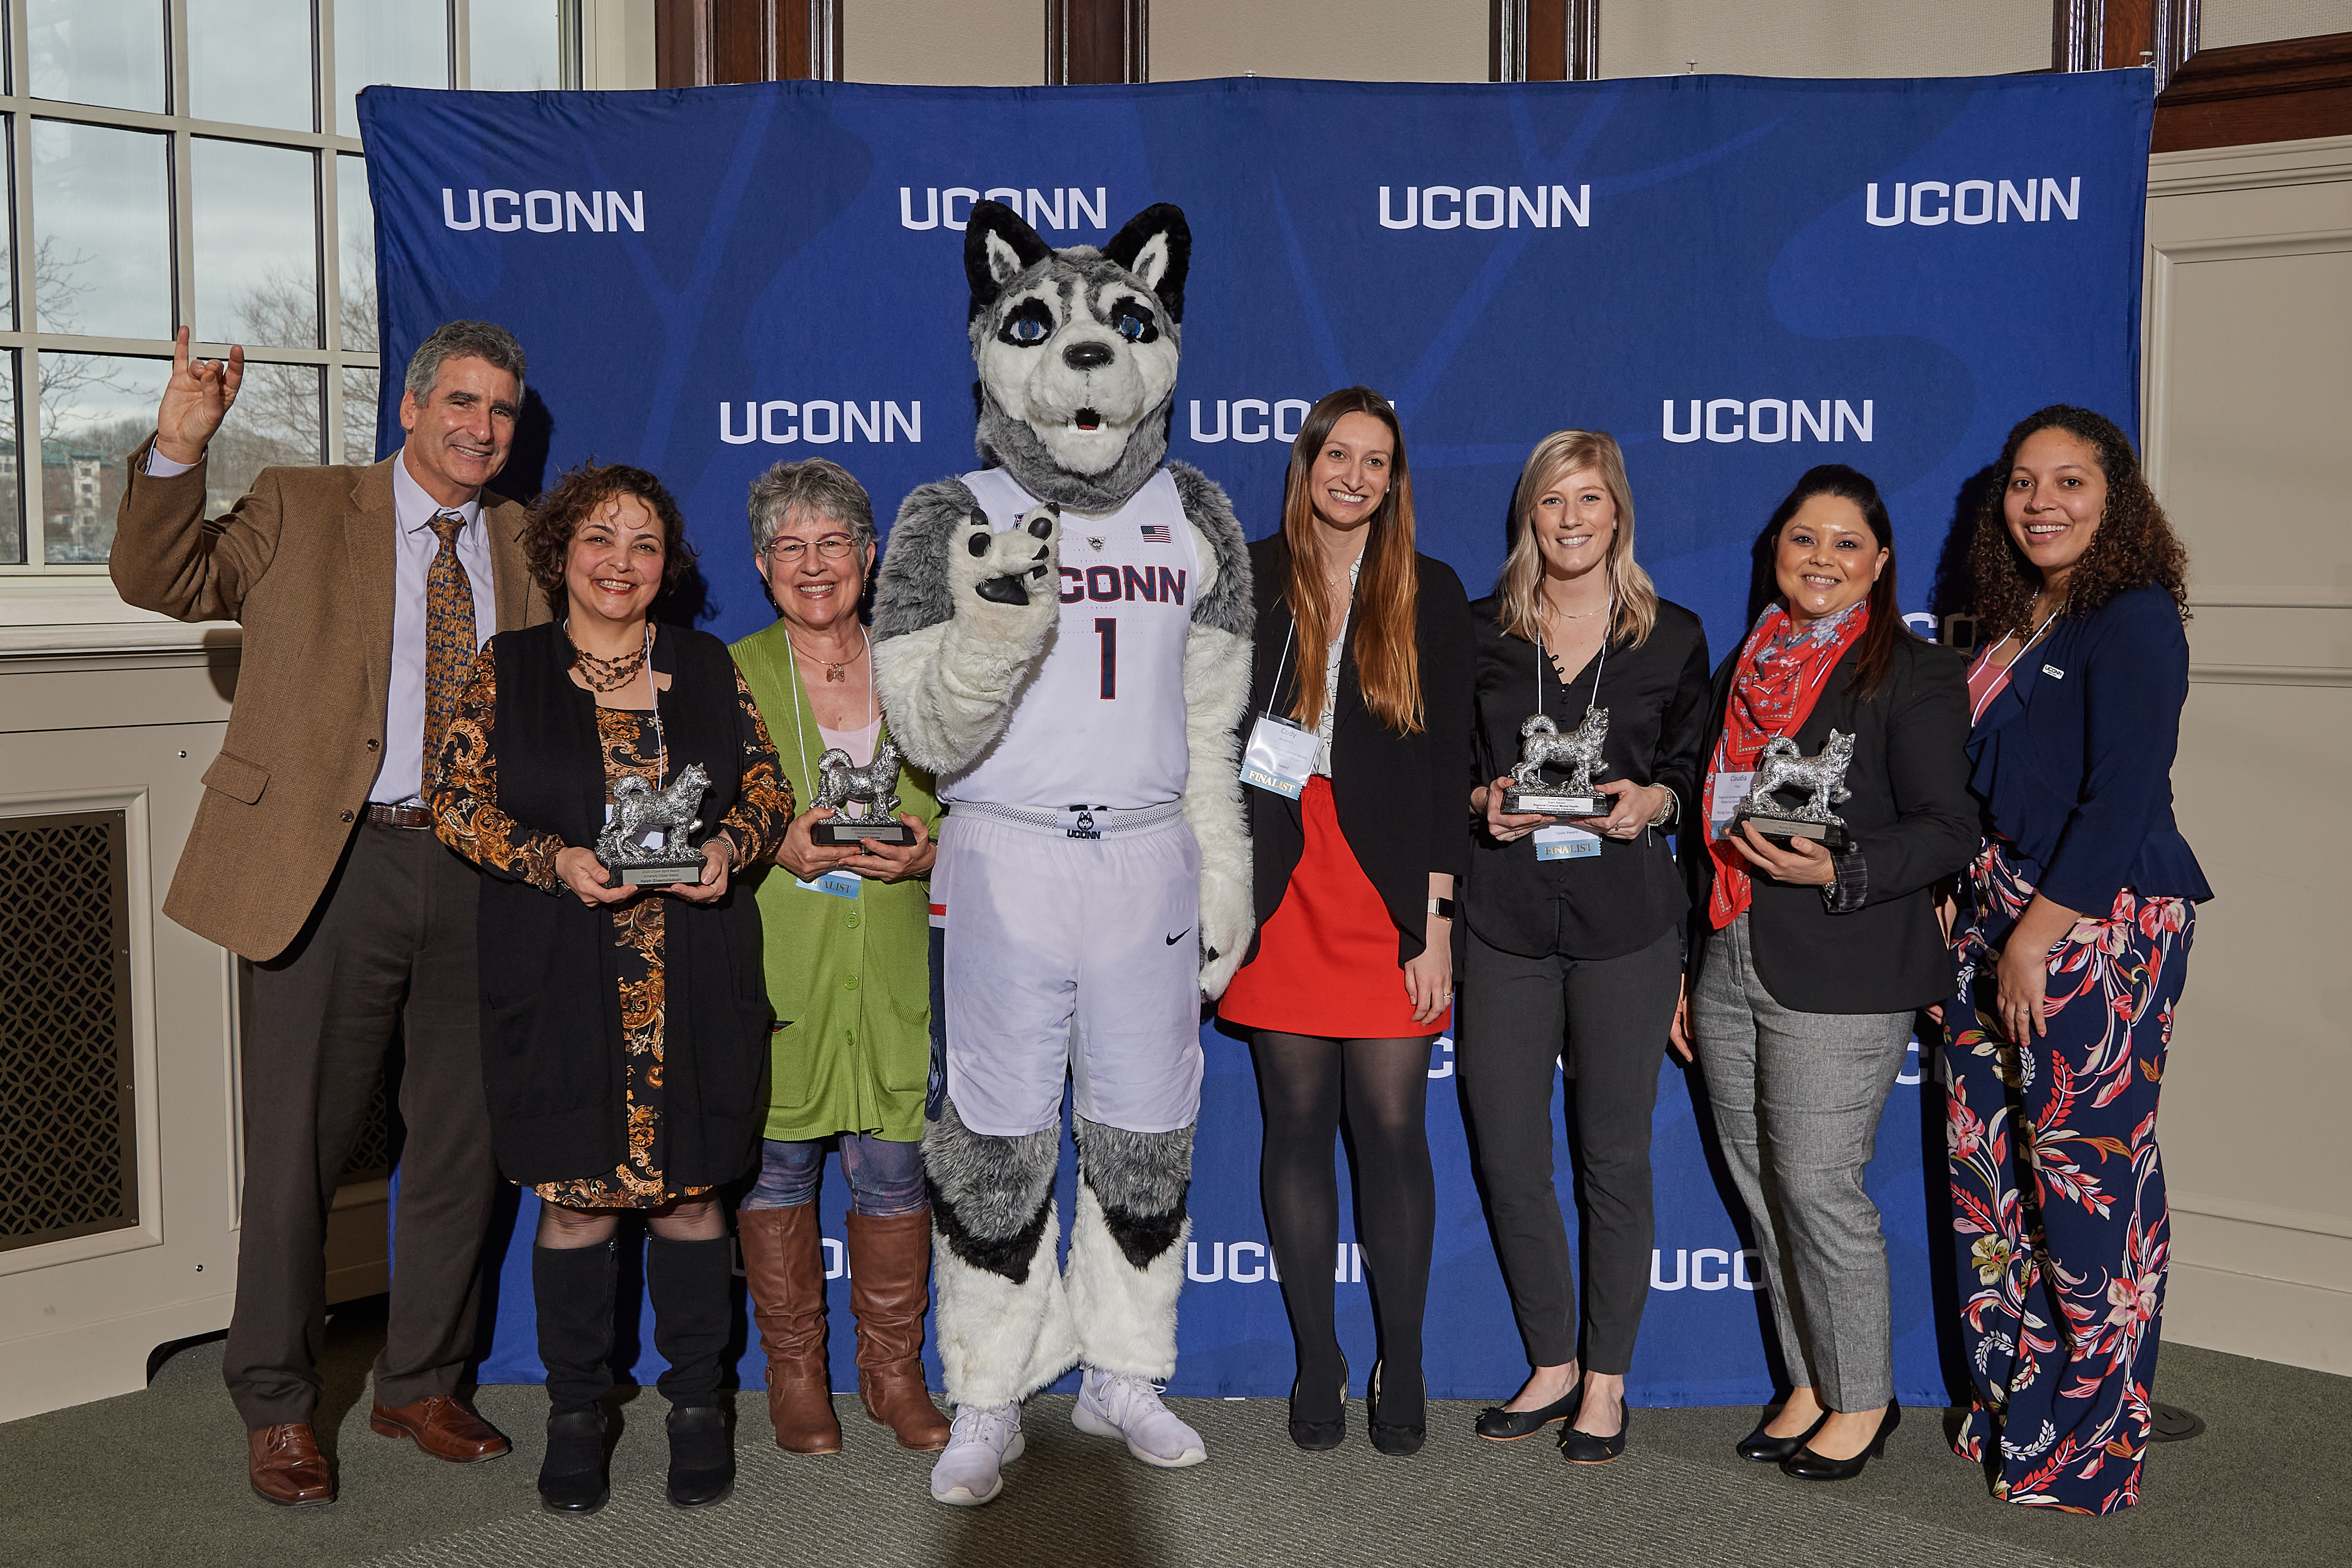 President Tom Katsouleas and Jonathan the Husky pose with 2020 UConn Spirit awards recipients at the Wilbur Cross North Reading Room